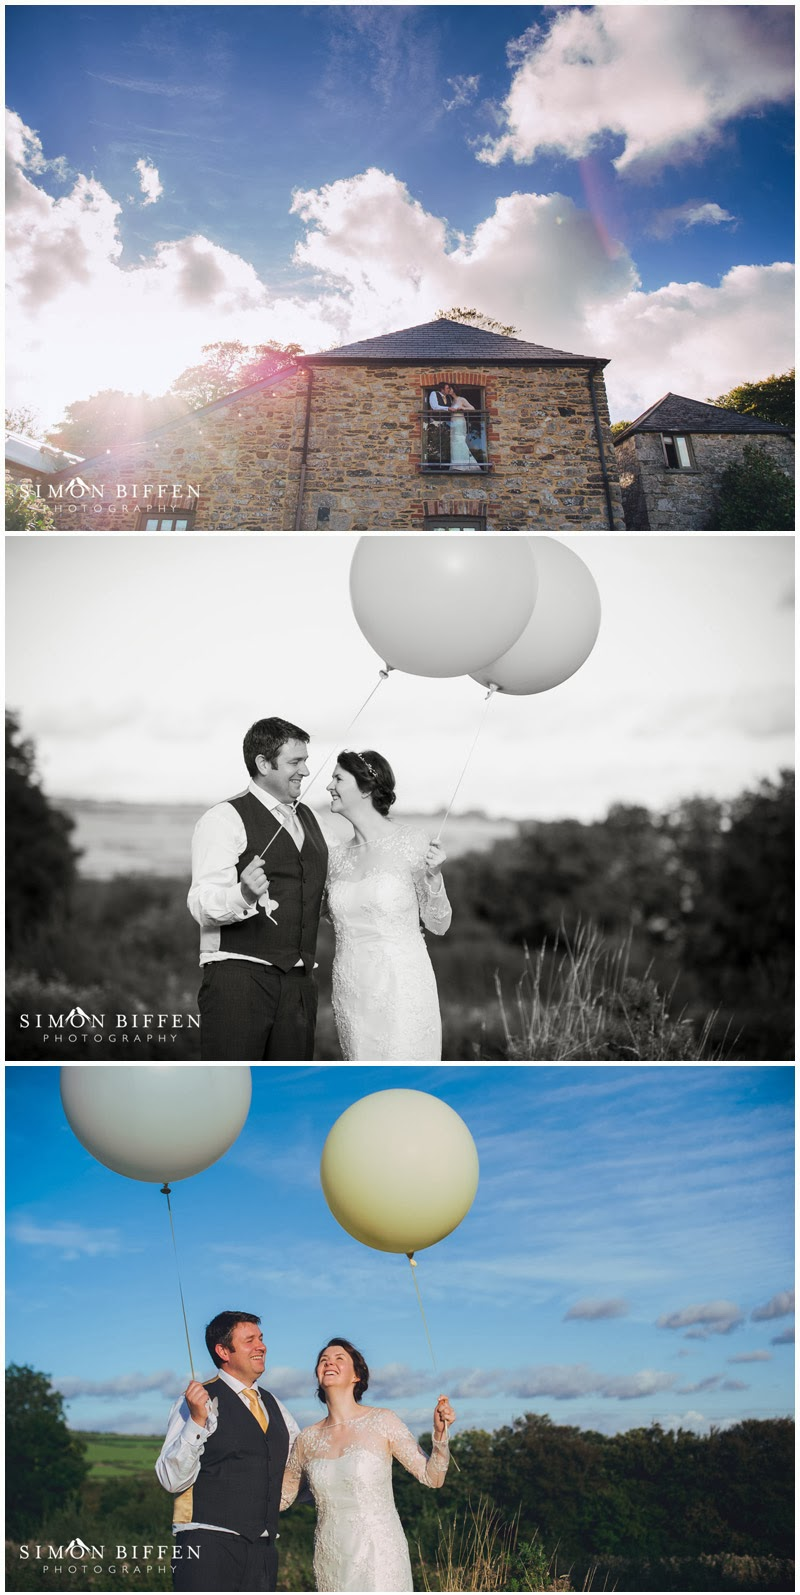 Bride and Groom and balloon Trevenna Cornwall